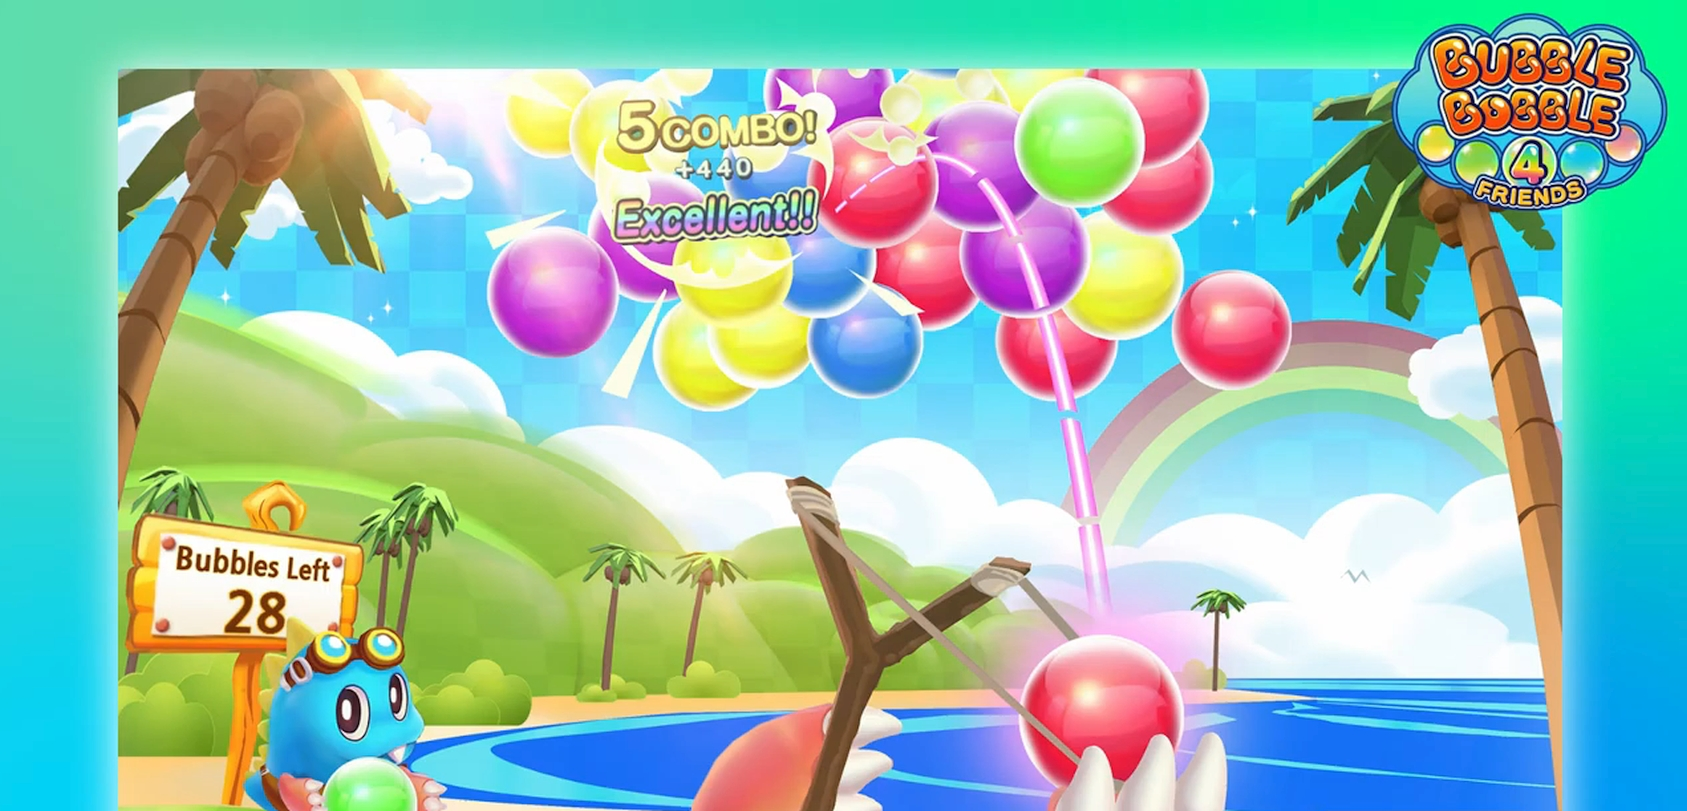 Taito Announces New 3D First-Person Game Puzzle Bobble VR For Oculus Quest